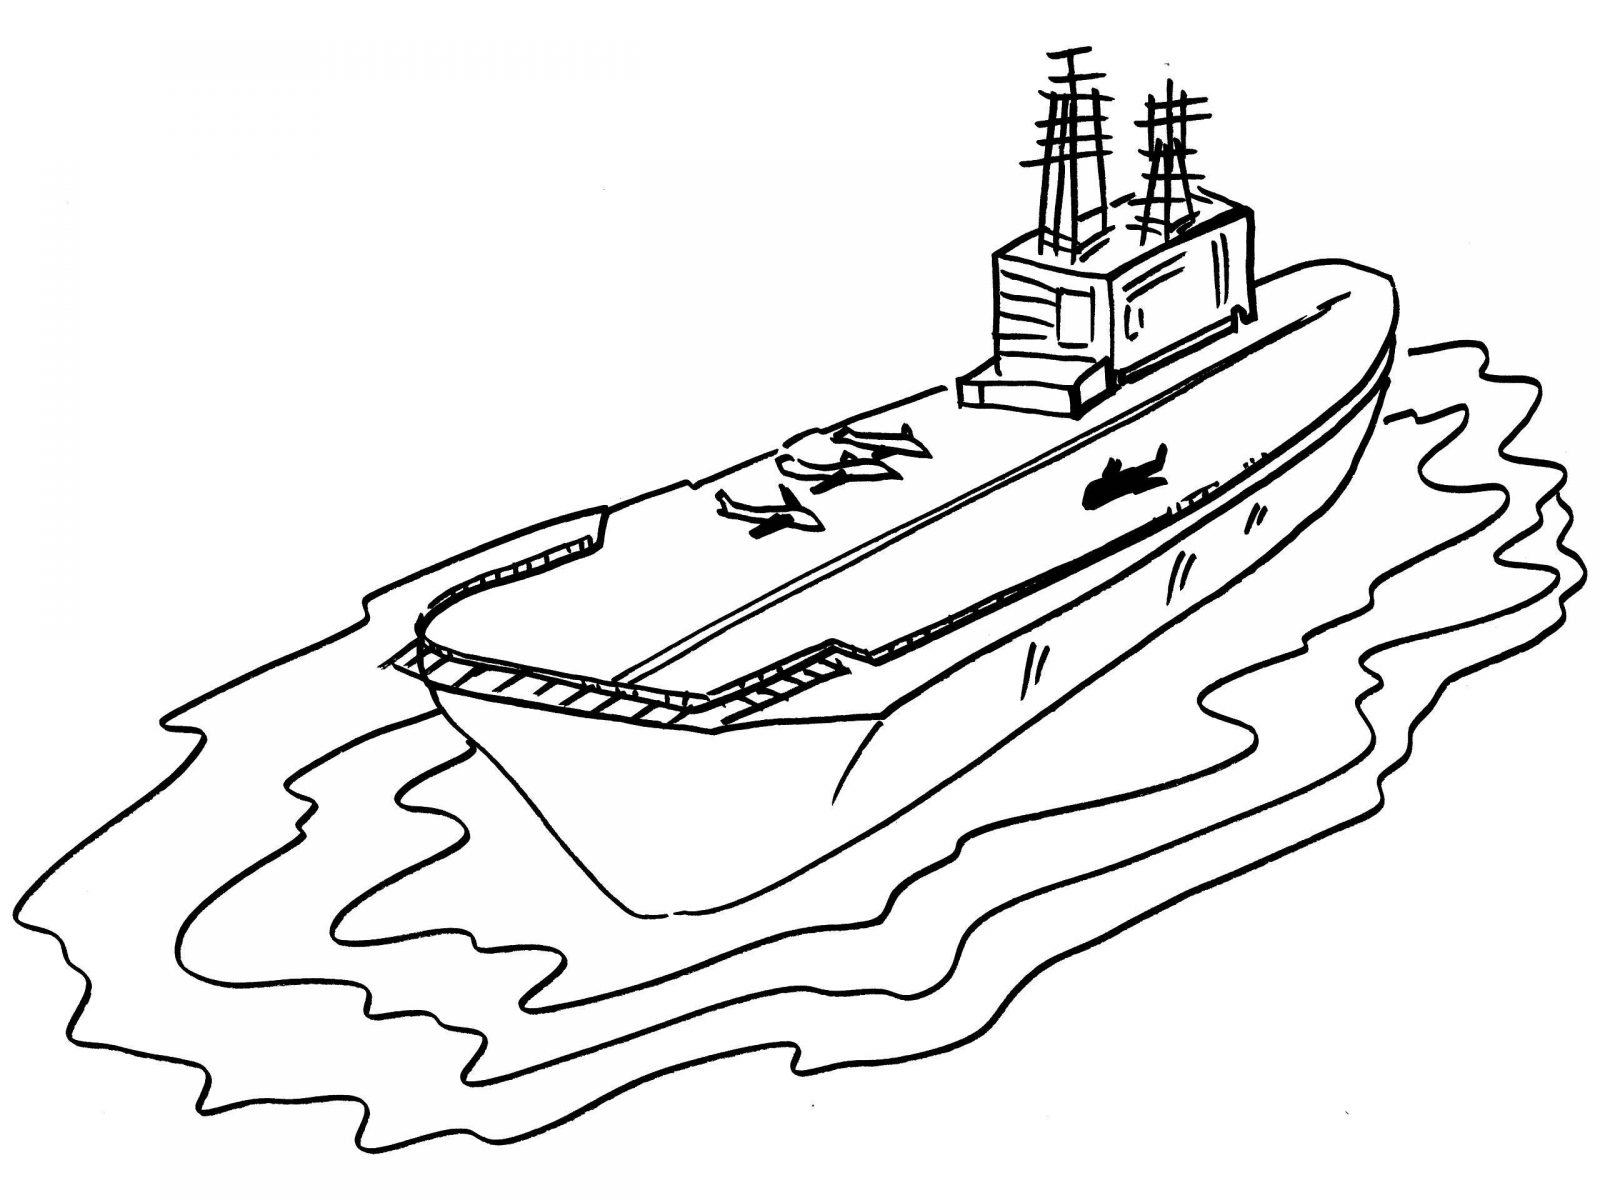 coloring ship pictures 32 navy ship coloring pages free printable coloring pages pictures ship coloring